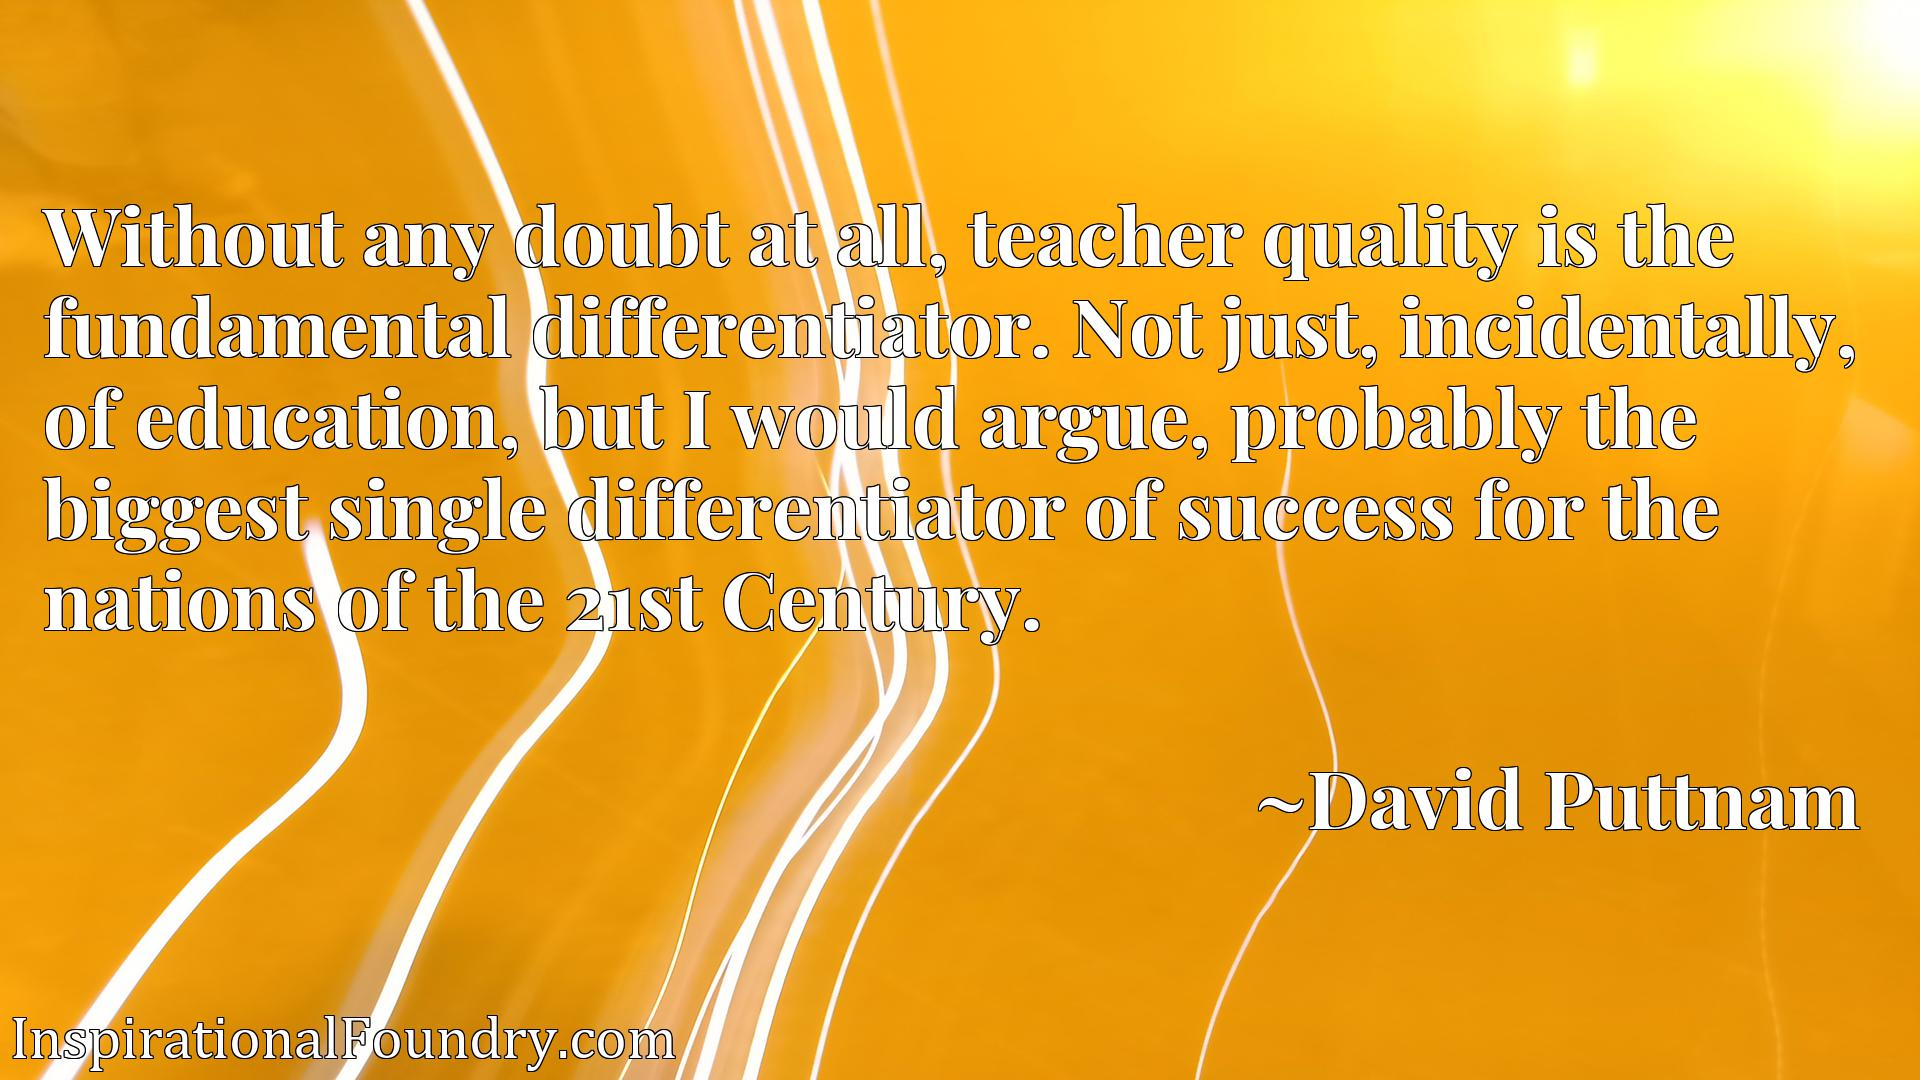 Without any doubt at all, teacher quality is the fundamental differentiator. Not just, incidentally, of education, but I would argue, probably the biggest single differentiator of success for the nations of the 21st Century.